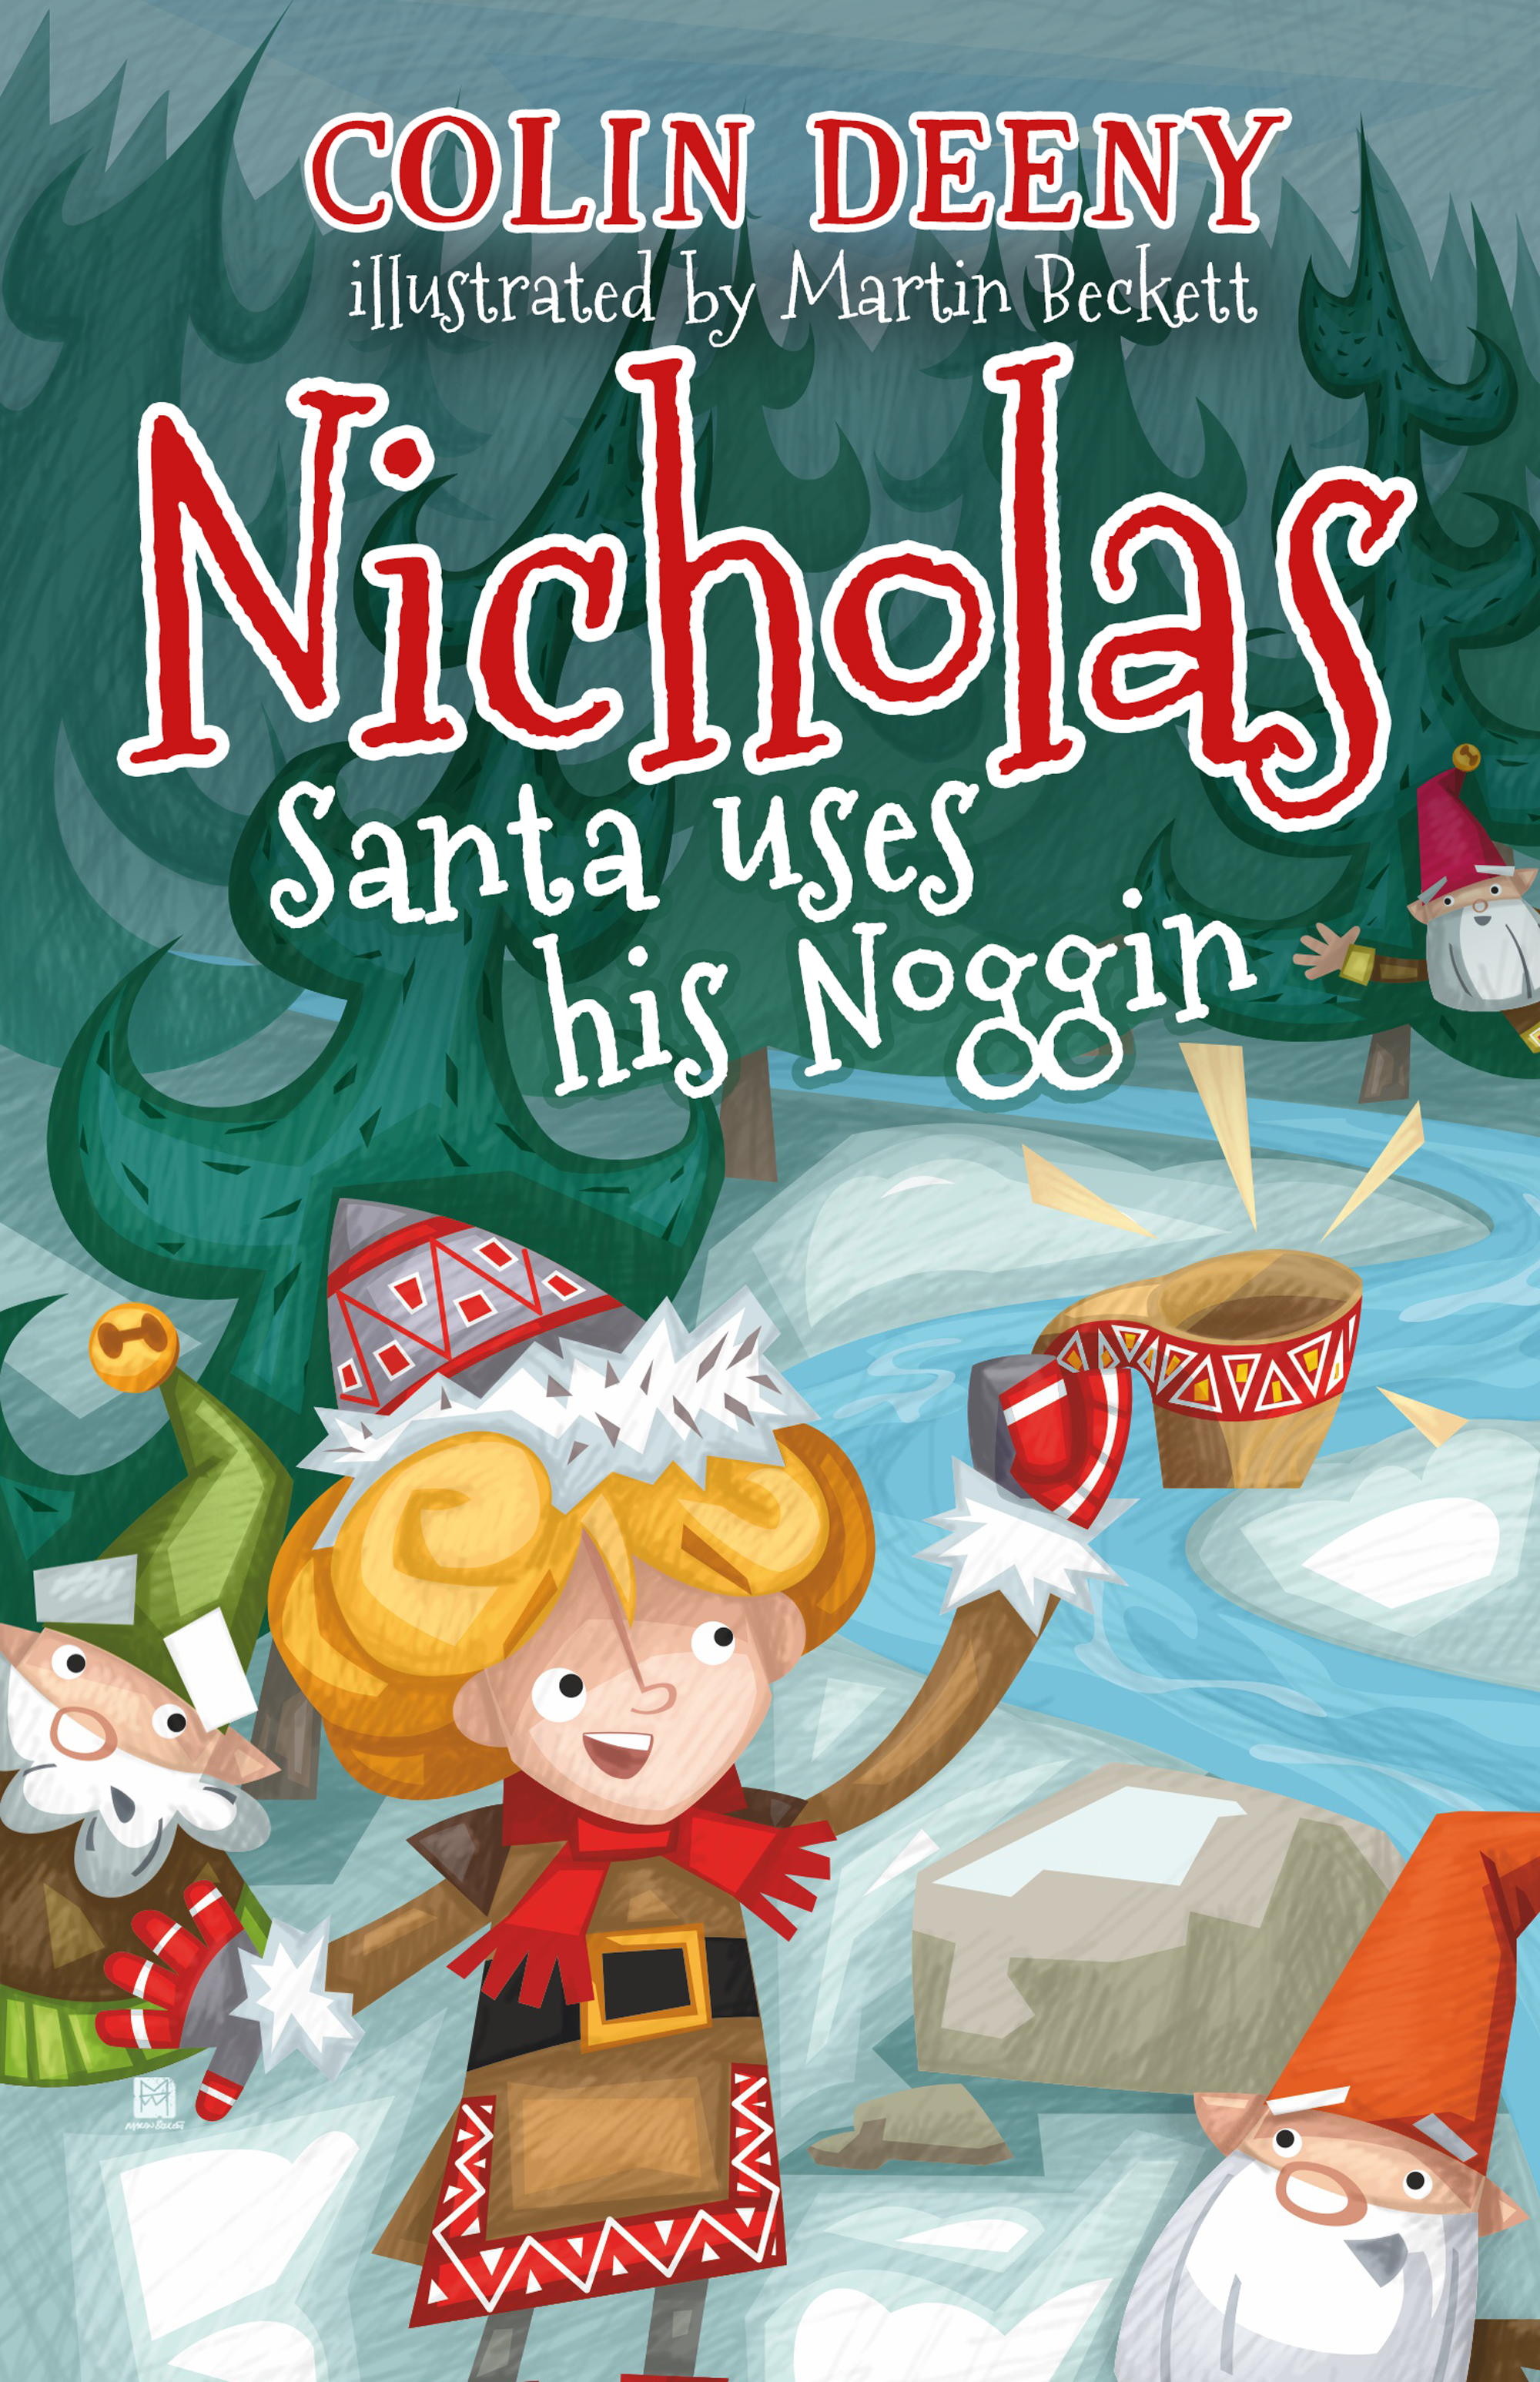 Nicholas, Santa uses his noggin by Colin Deeny